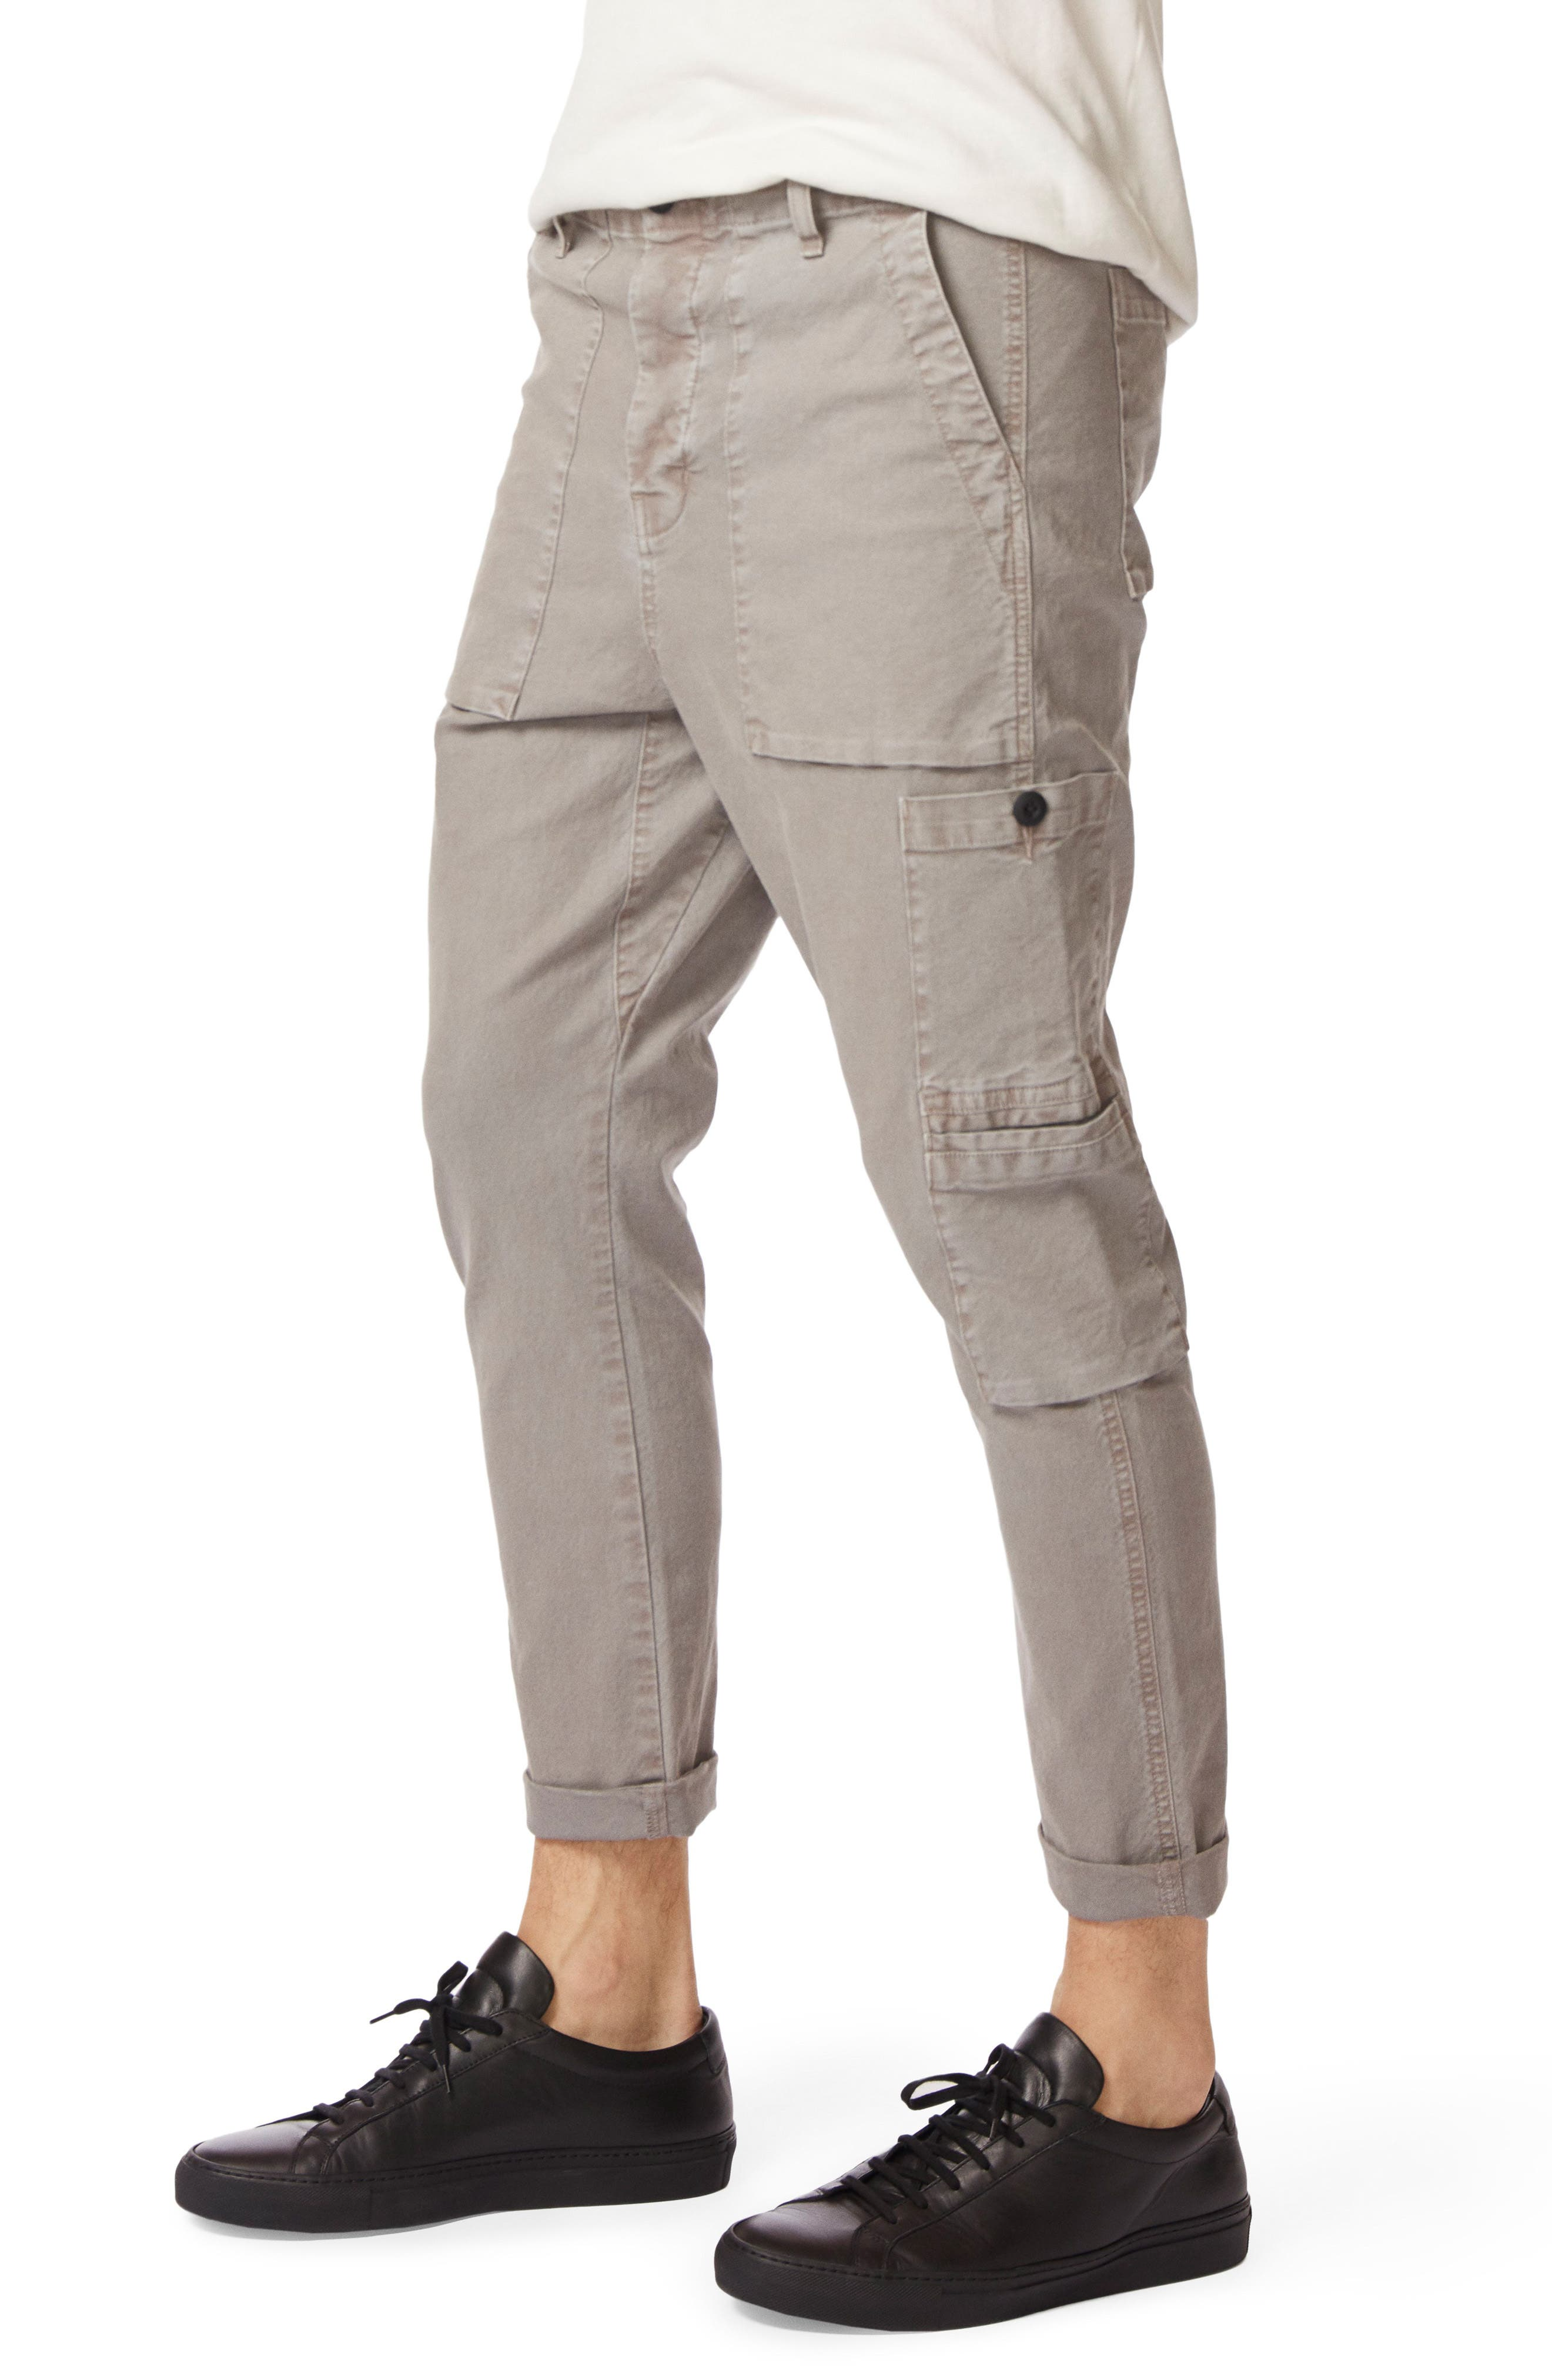 Koeficient Straight Fit Pant,                             Alternate thumbnail 3, color,                             Dull Drawi